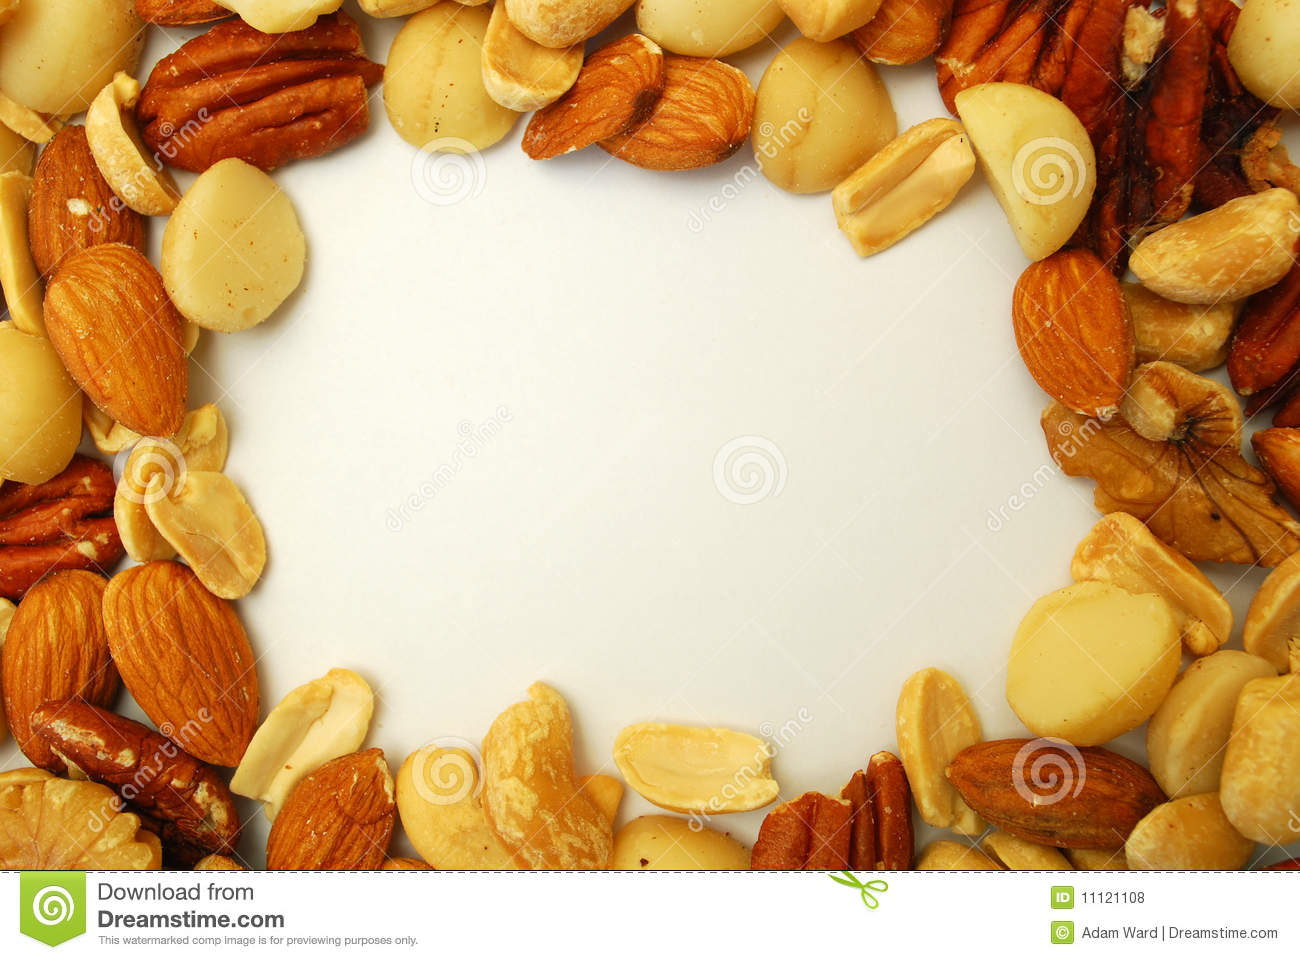 Girl Scout Wallpaper Border Of Nuts Stock Photo Image Of Closeup Snack